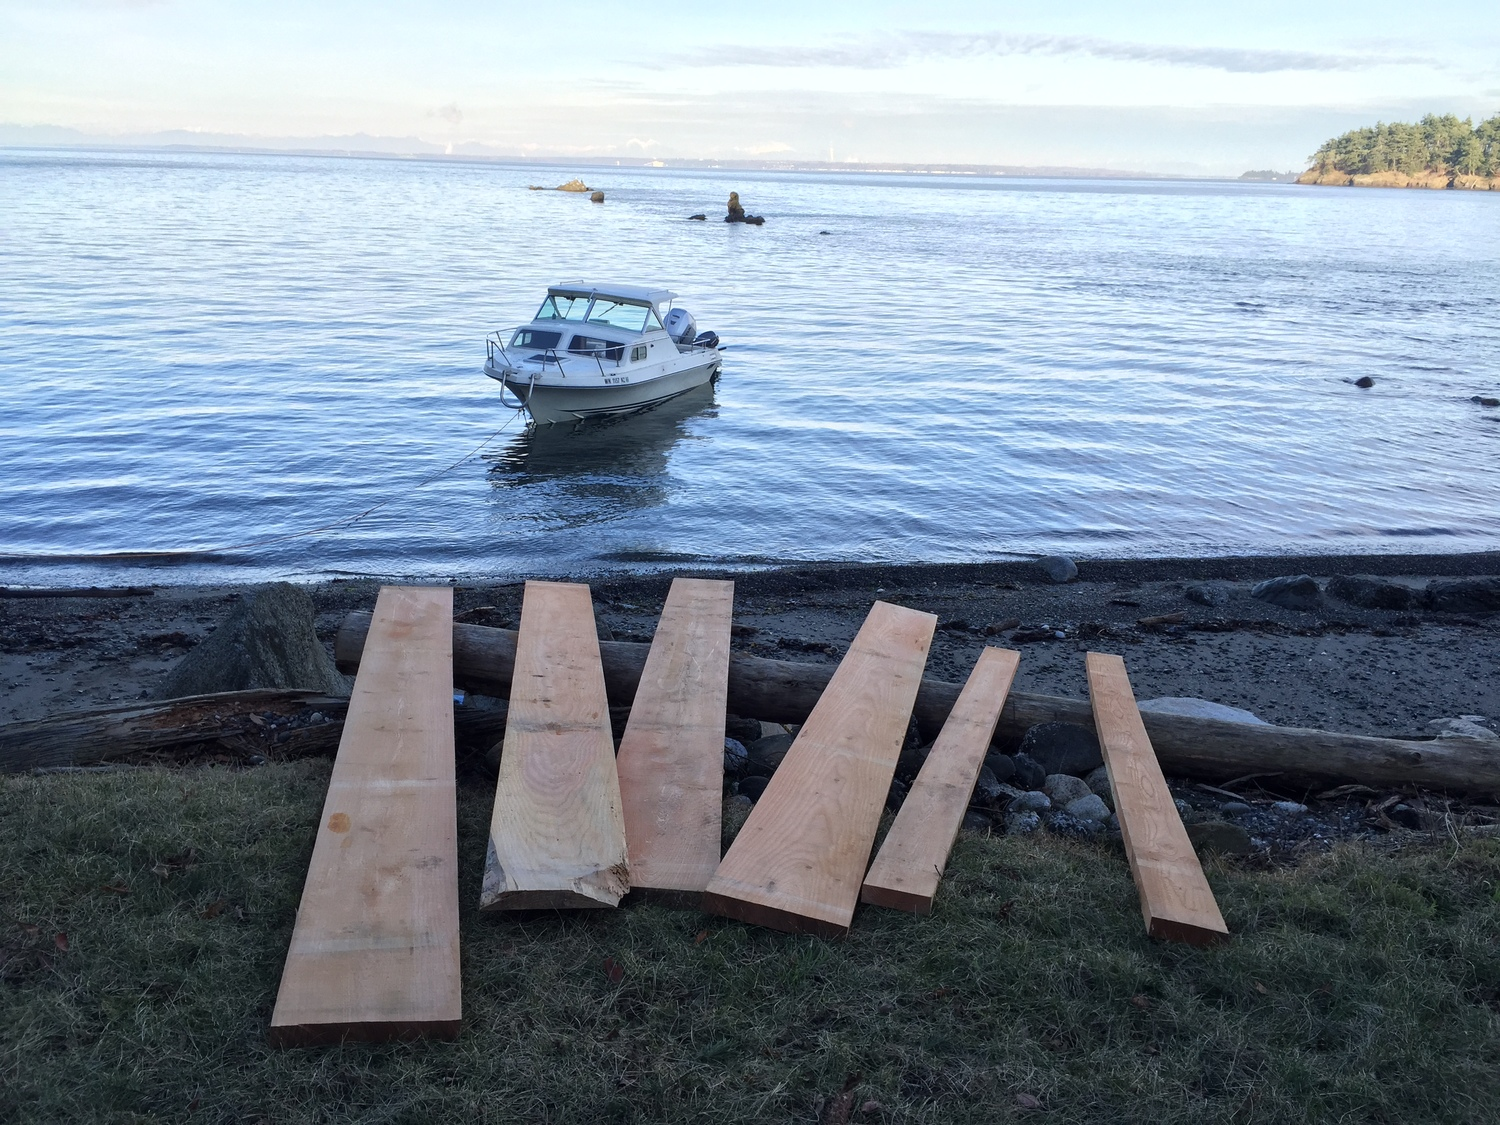 """harvested' some nice douglas fir boards from a nearby island today.  These trees grew within a few miles of the clients home on Lummi Island.  Design is simple and sturdy."